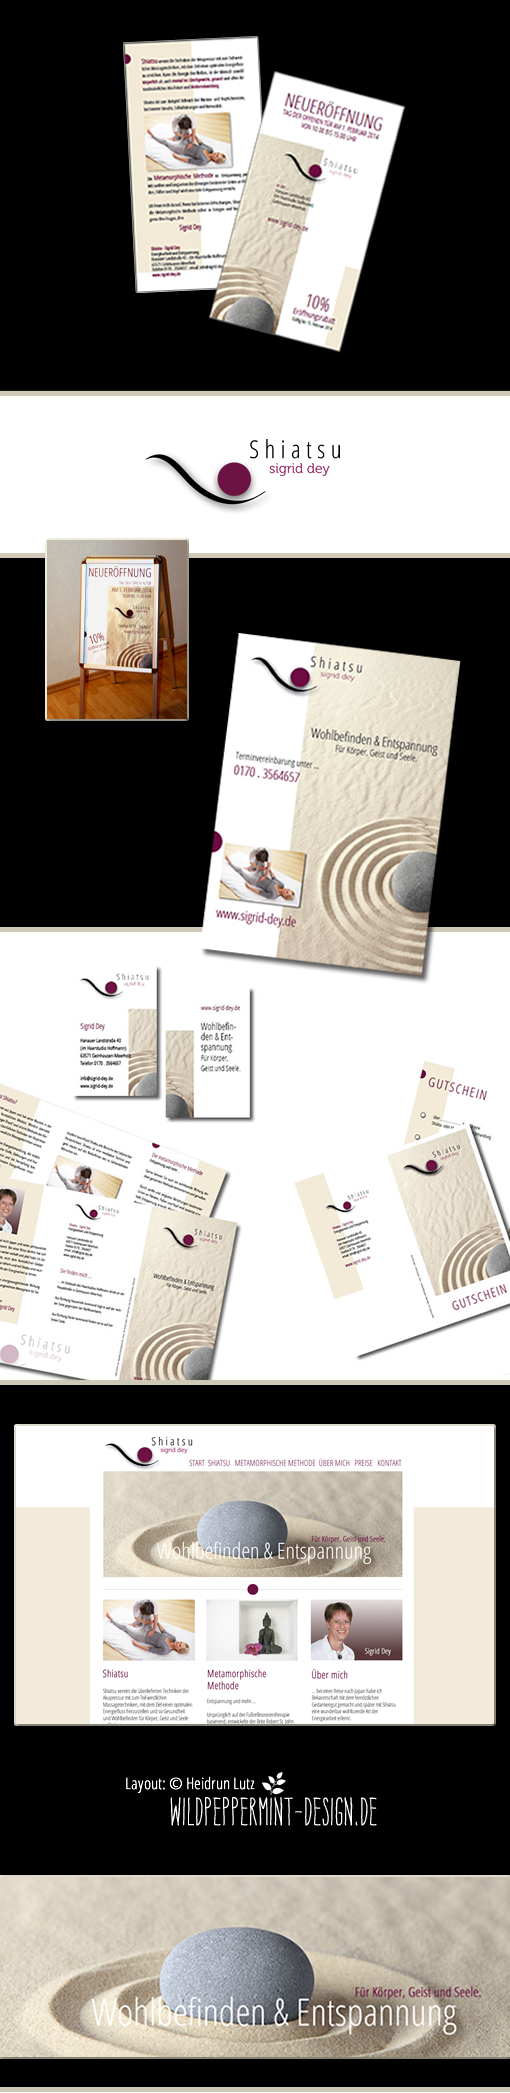 Corporate Design, Shiatsu, by wildpeppermint-design